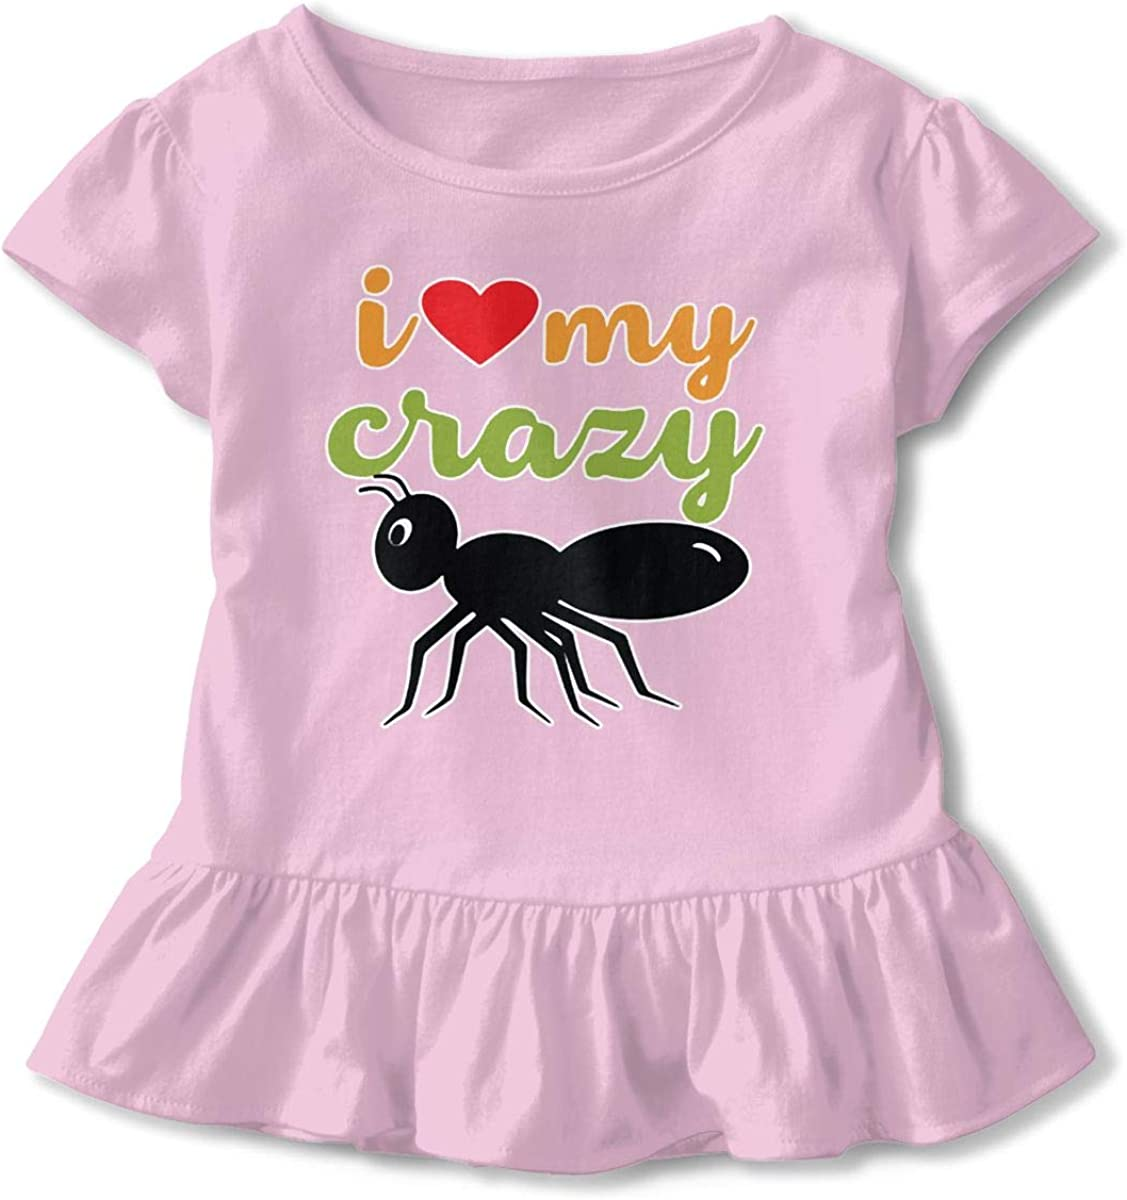 I Love My Crazy Aunt Baby Skirts Lovely Kids T Shirt Dress Cotton Flounces Outfits